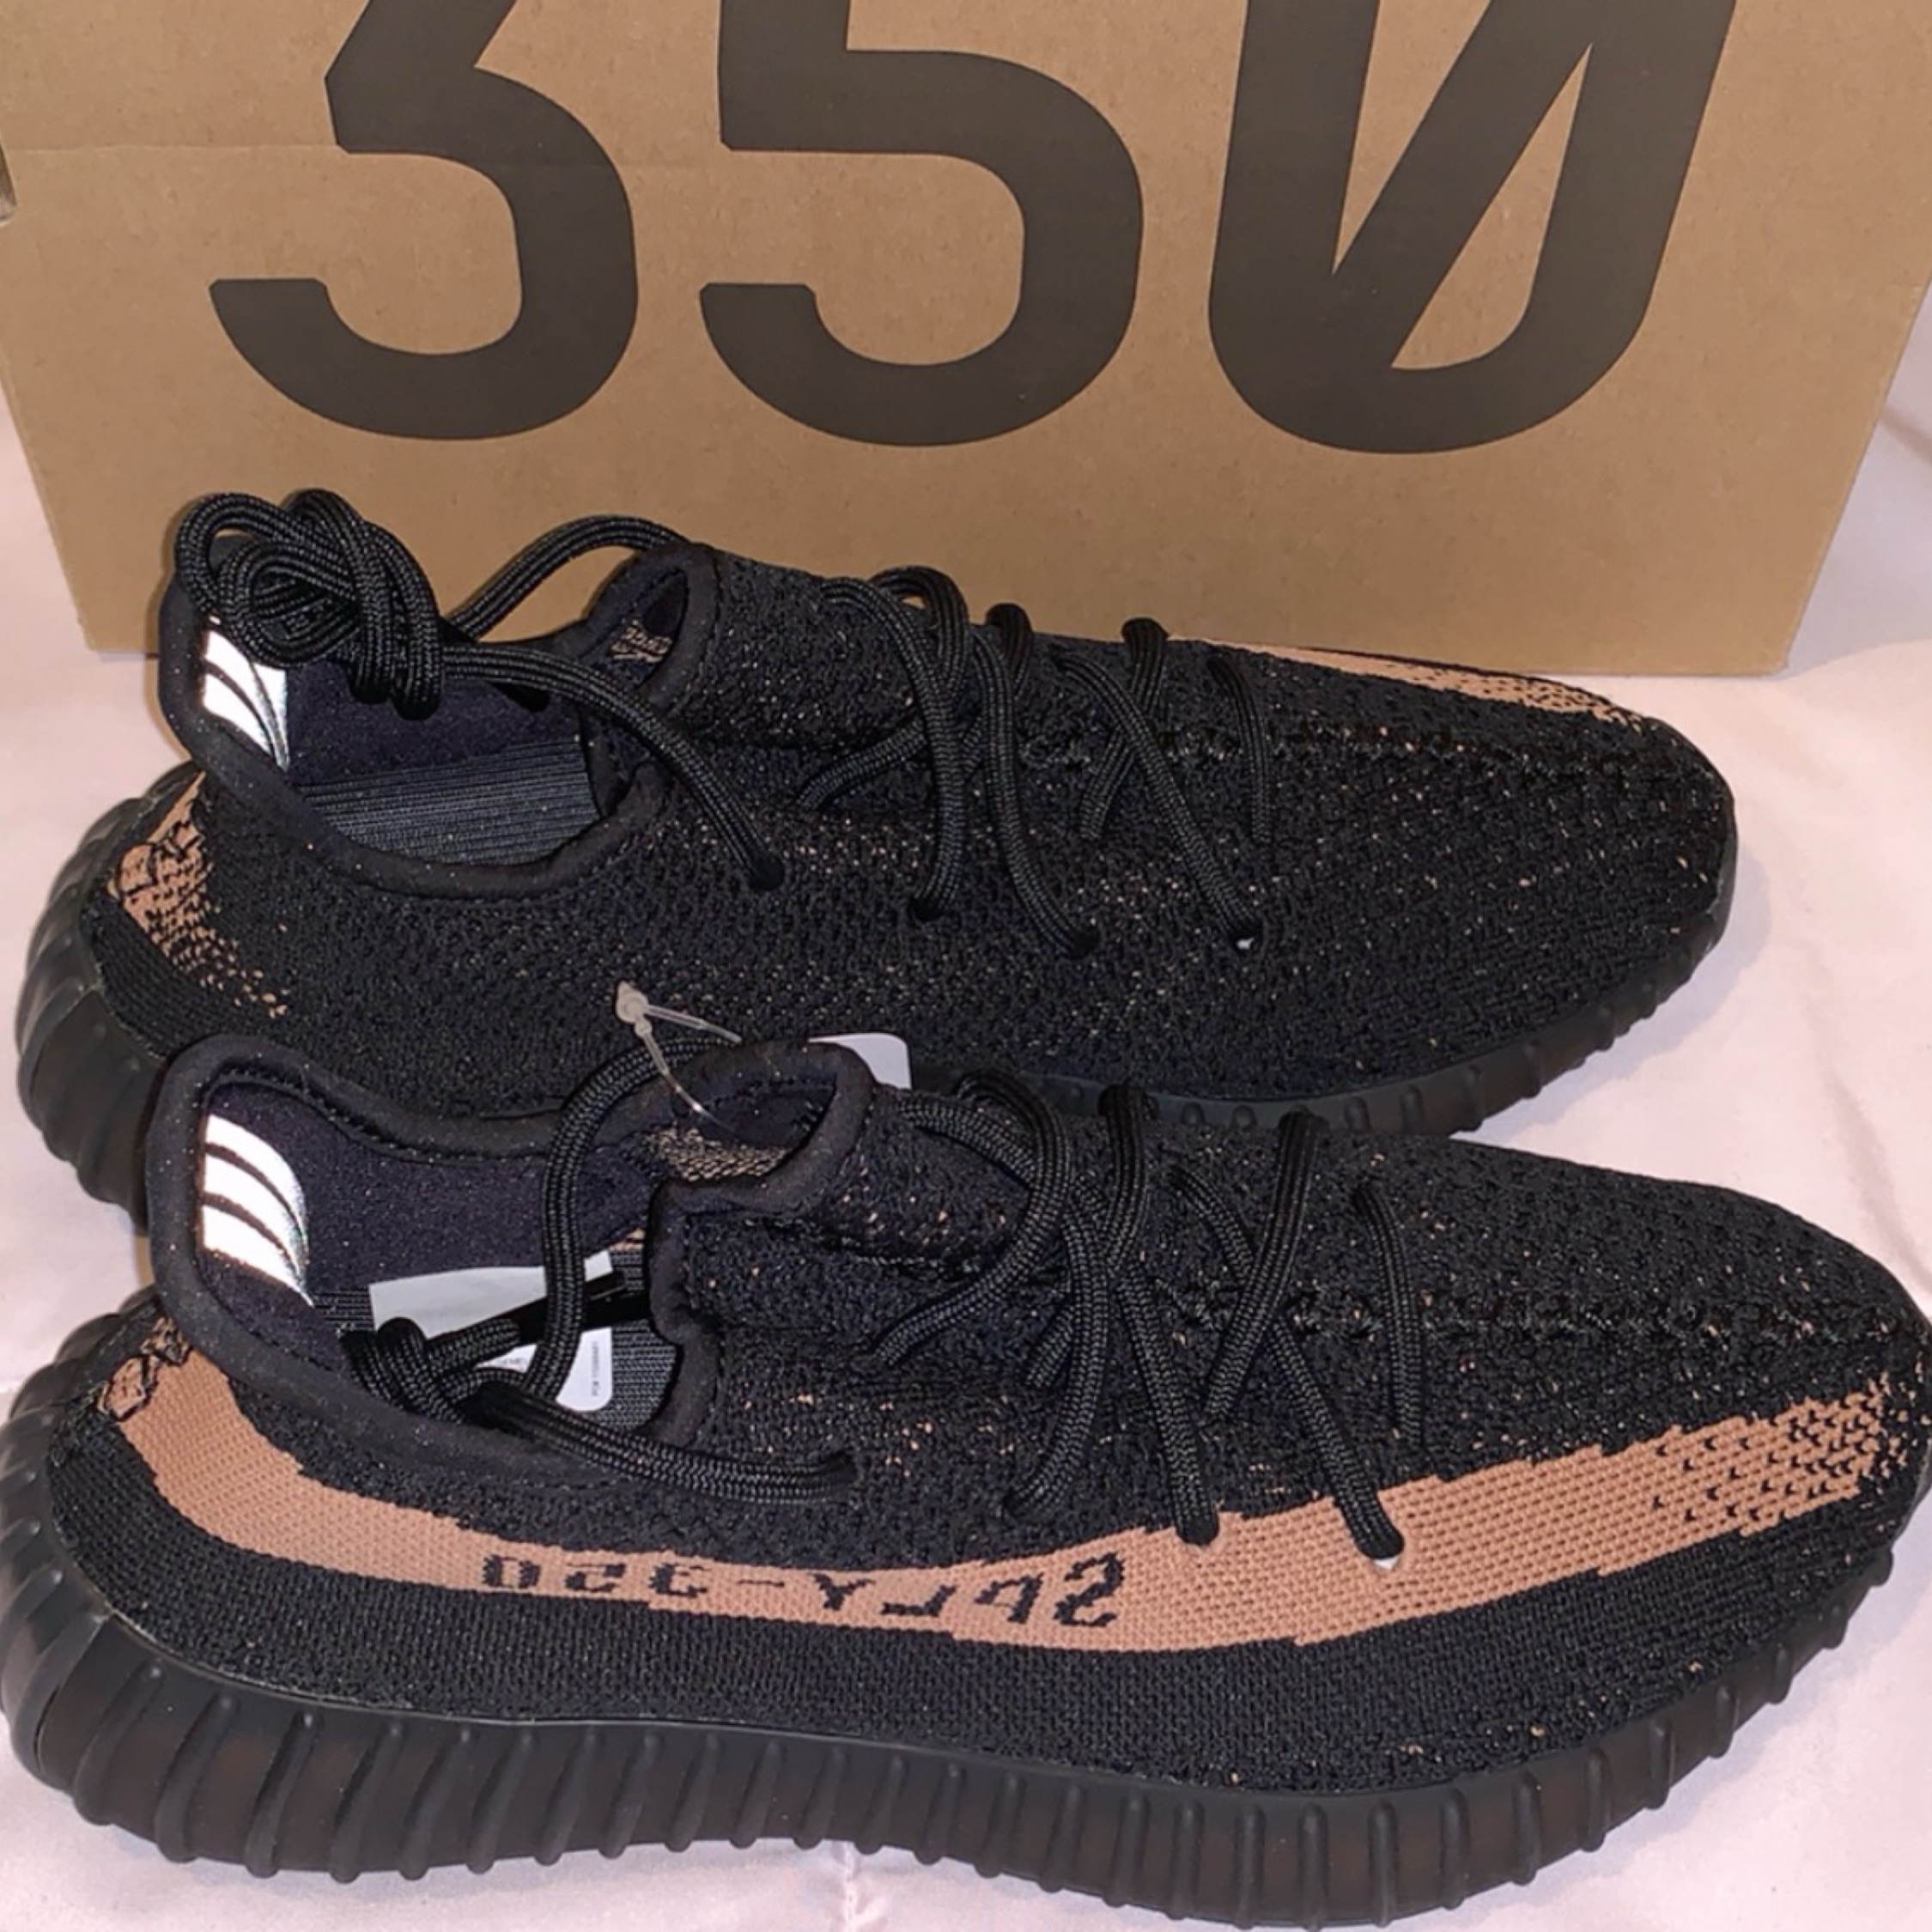 1229a930bf944 Adidas Yeezy Boost 350 V2 Core Black Copper